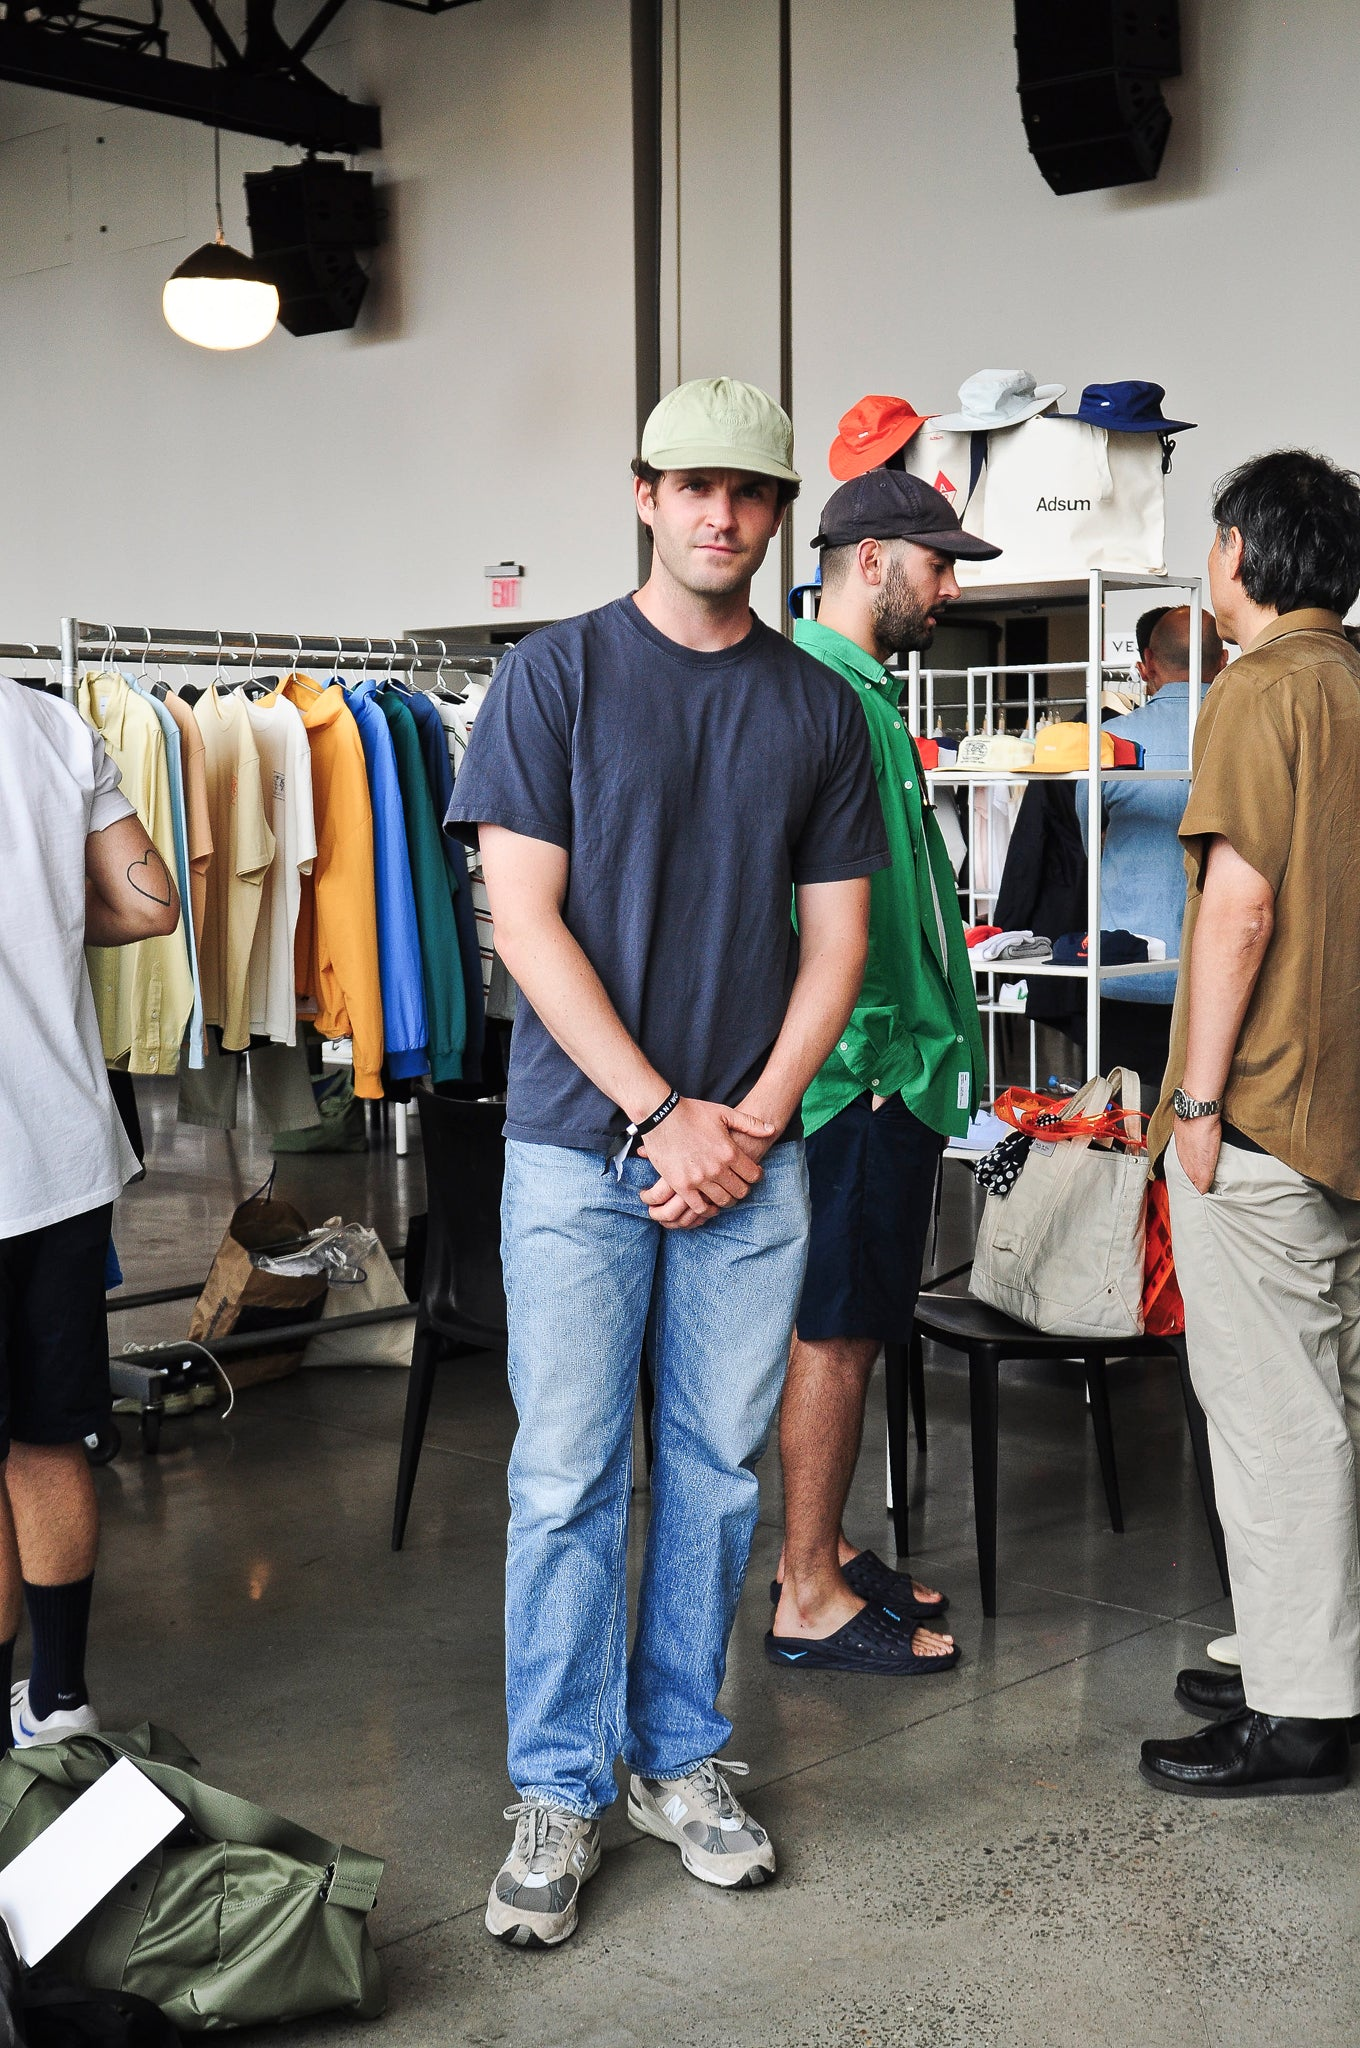 Pete Adsum Interview NYC at shoplostfound 2